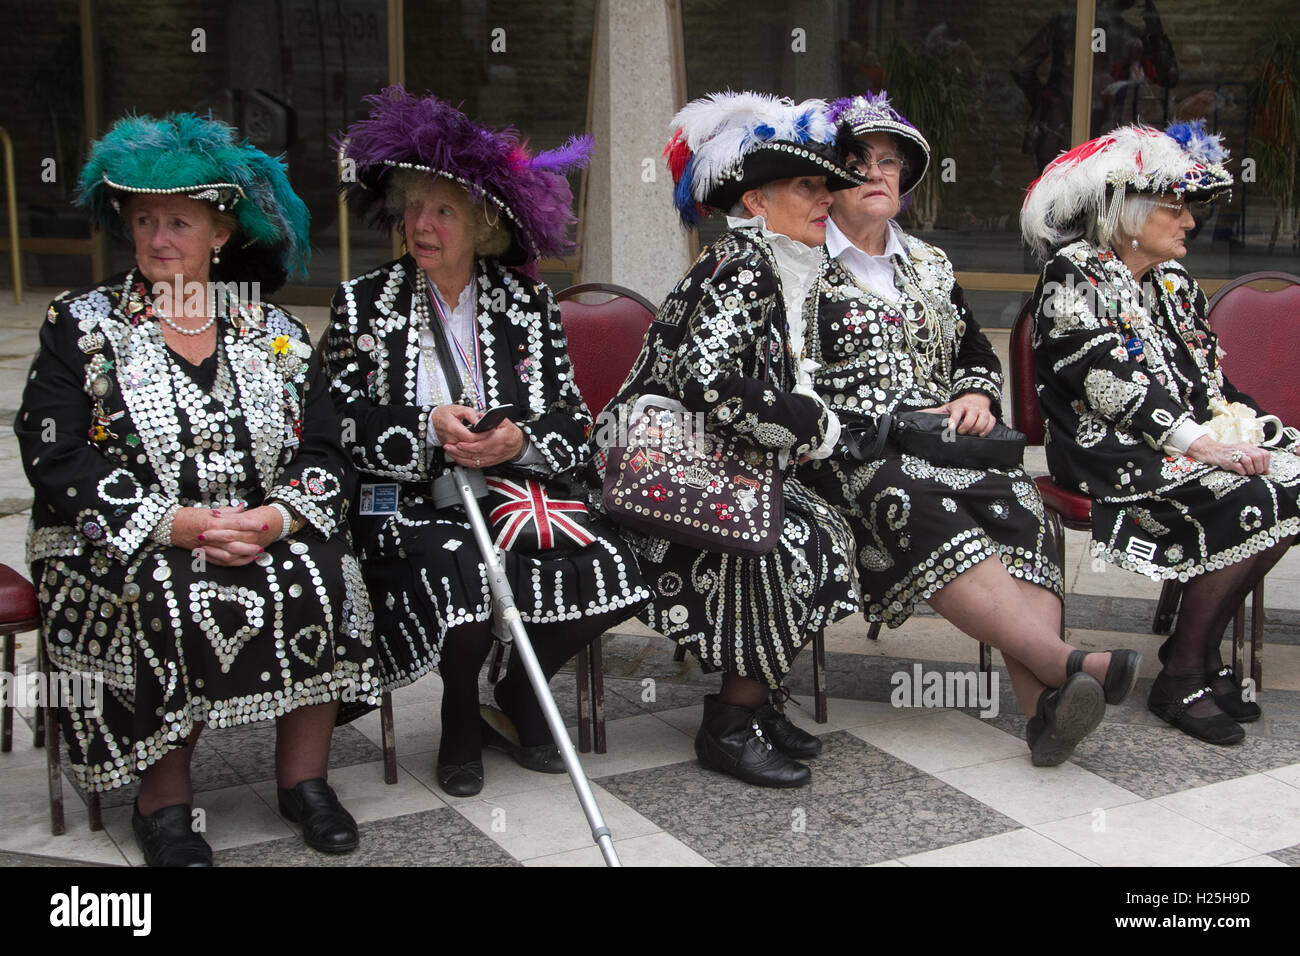 London, UK. 25th Sep, 2016. Pearly Kings and Queens celebrate the autumn harvest festival at the London Guildhall - Stock Image